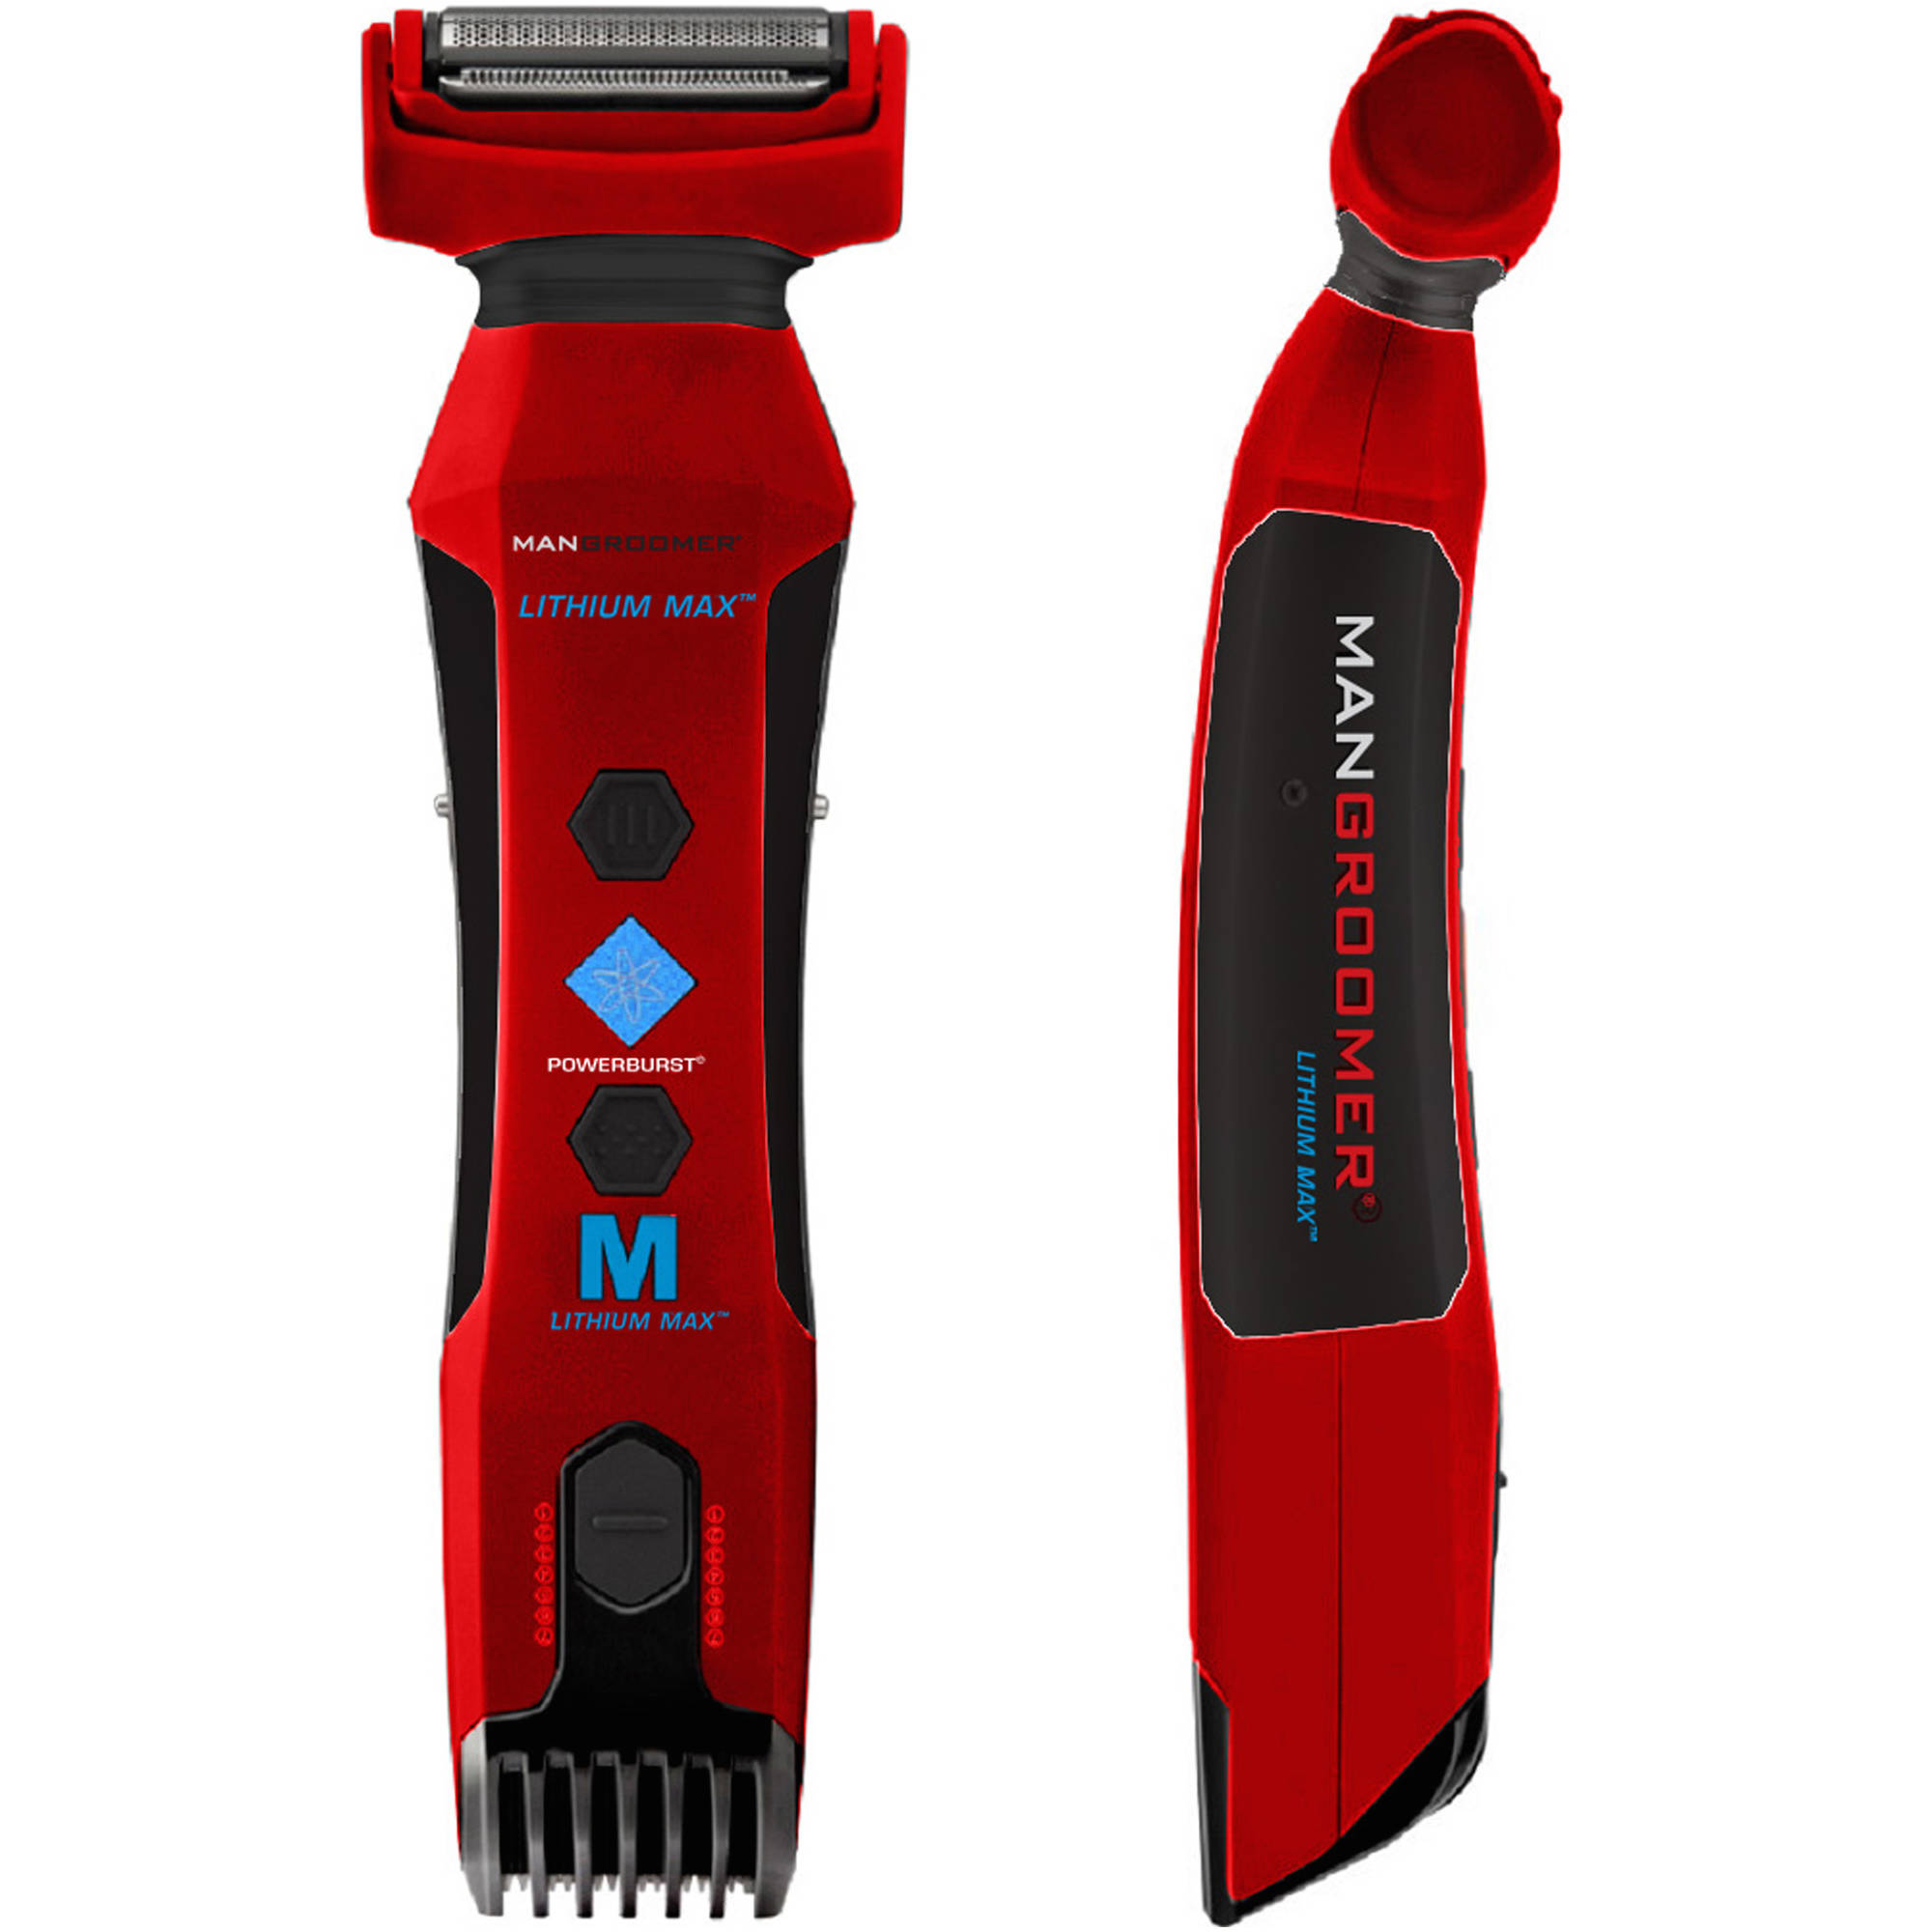 ManGroomer Lithium Max Body Groomer and Trimmer, 4 pc